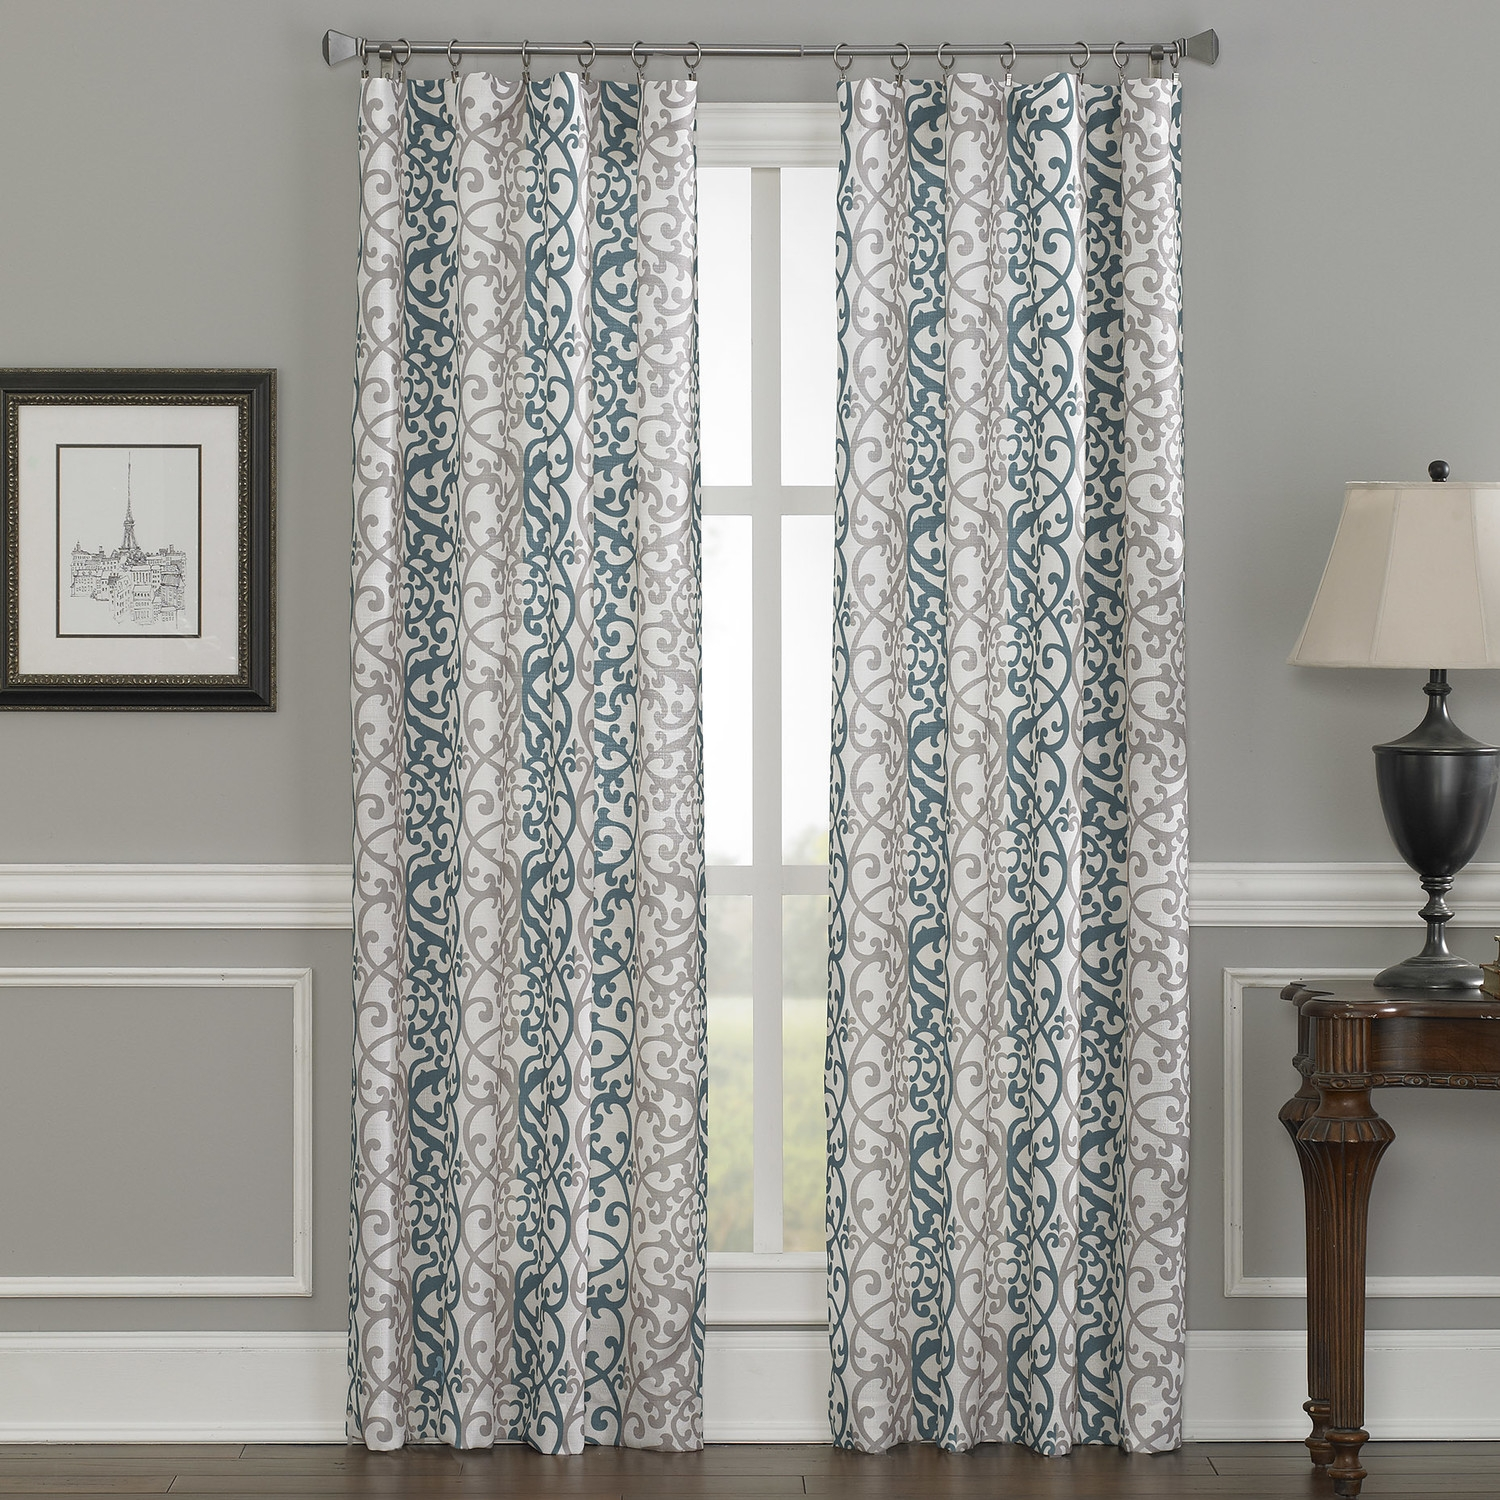 25 Double Panel Shower Curtains Curtain Ideas